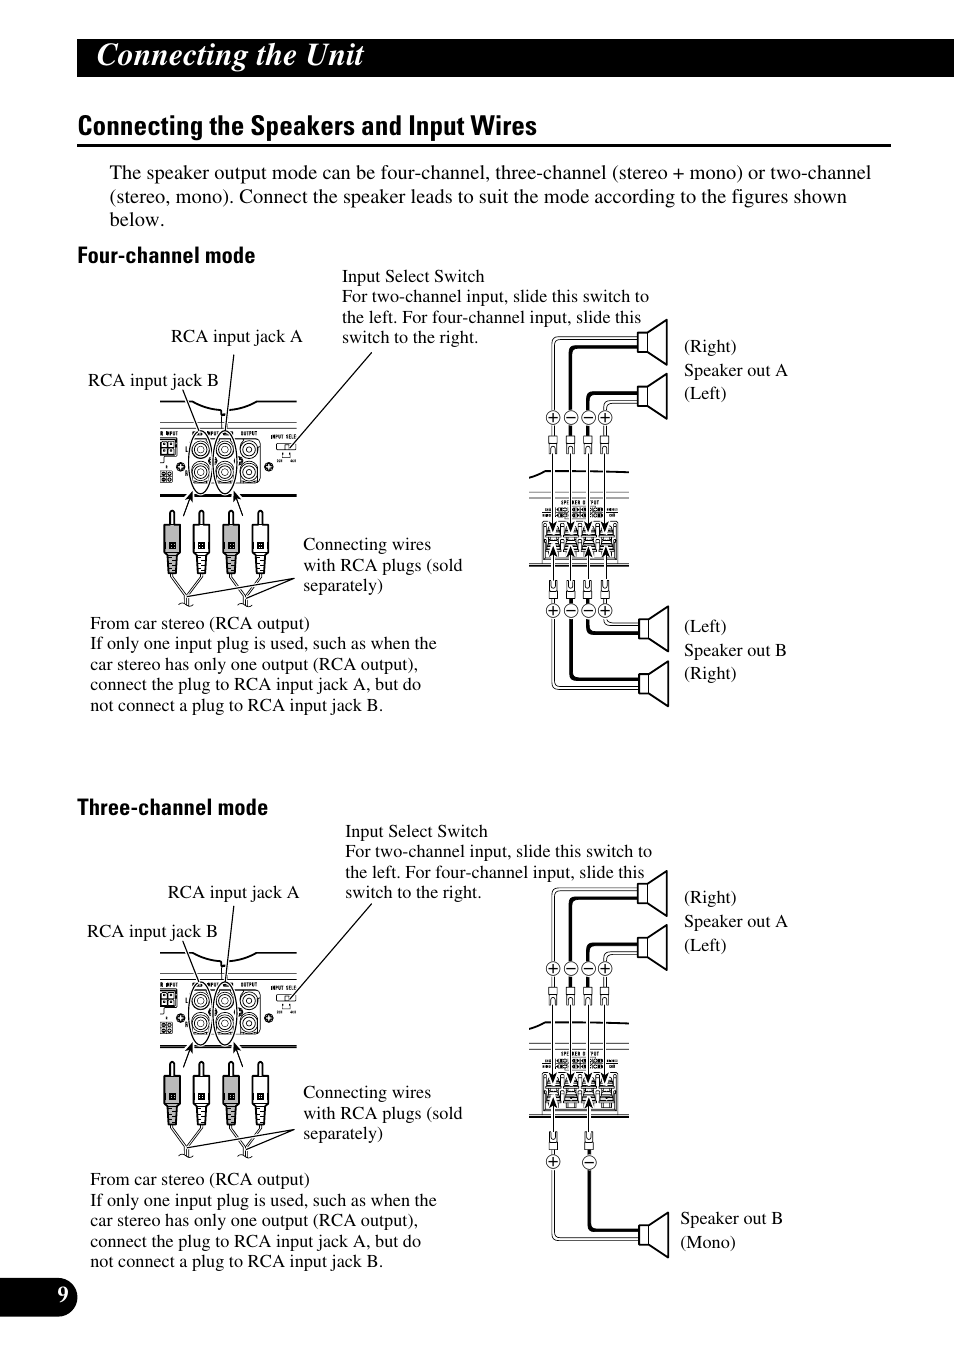 hight resolution of connecting the speakers and input wires connecting the unit four channel mode three channel mode pioneer gm 6300f user manual page 10 86